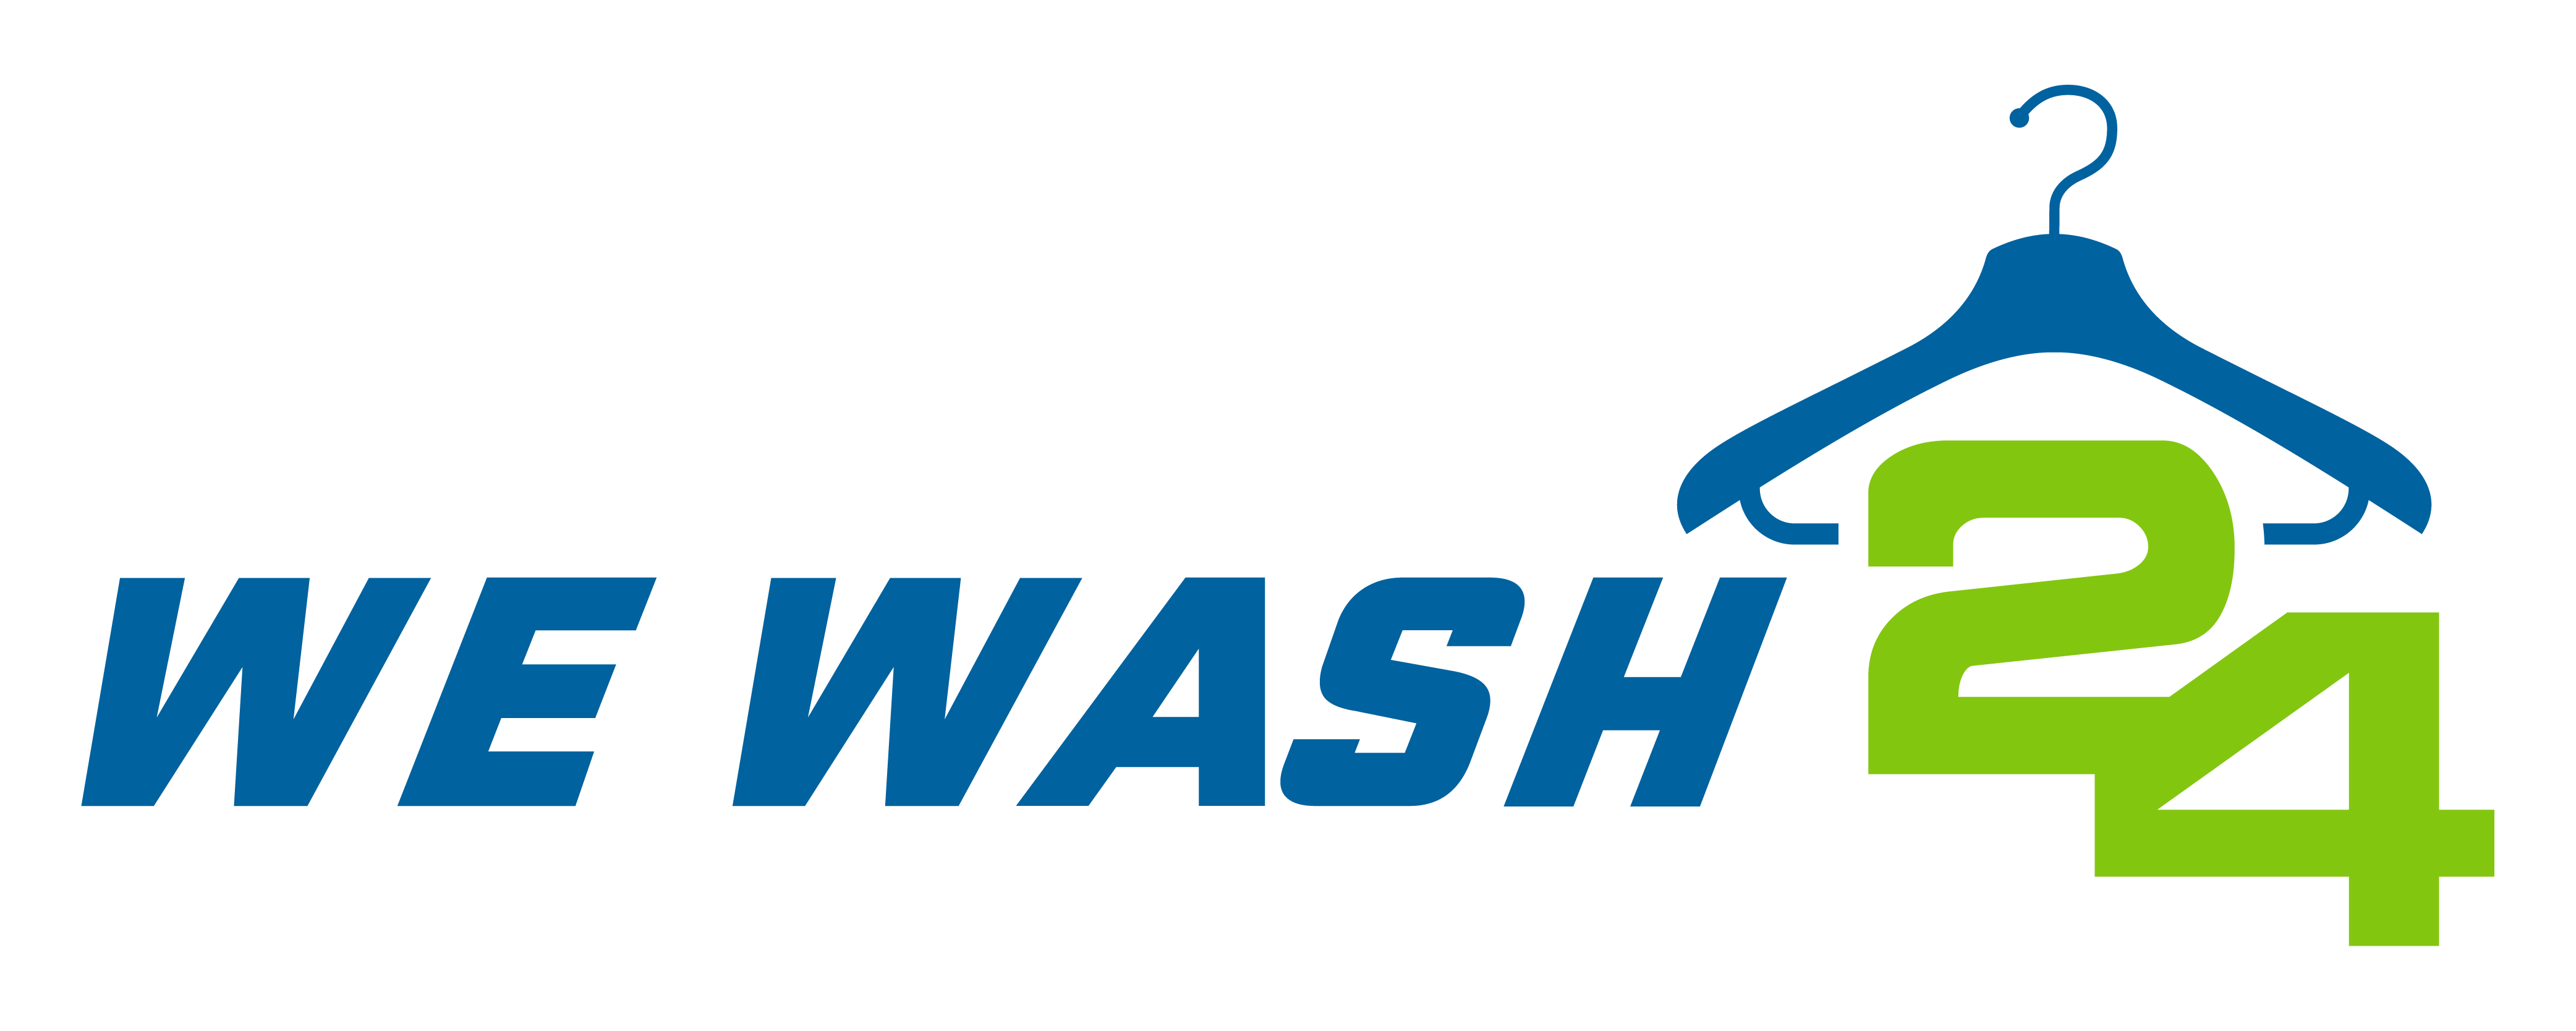 We Wash 24 Laundry Service